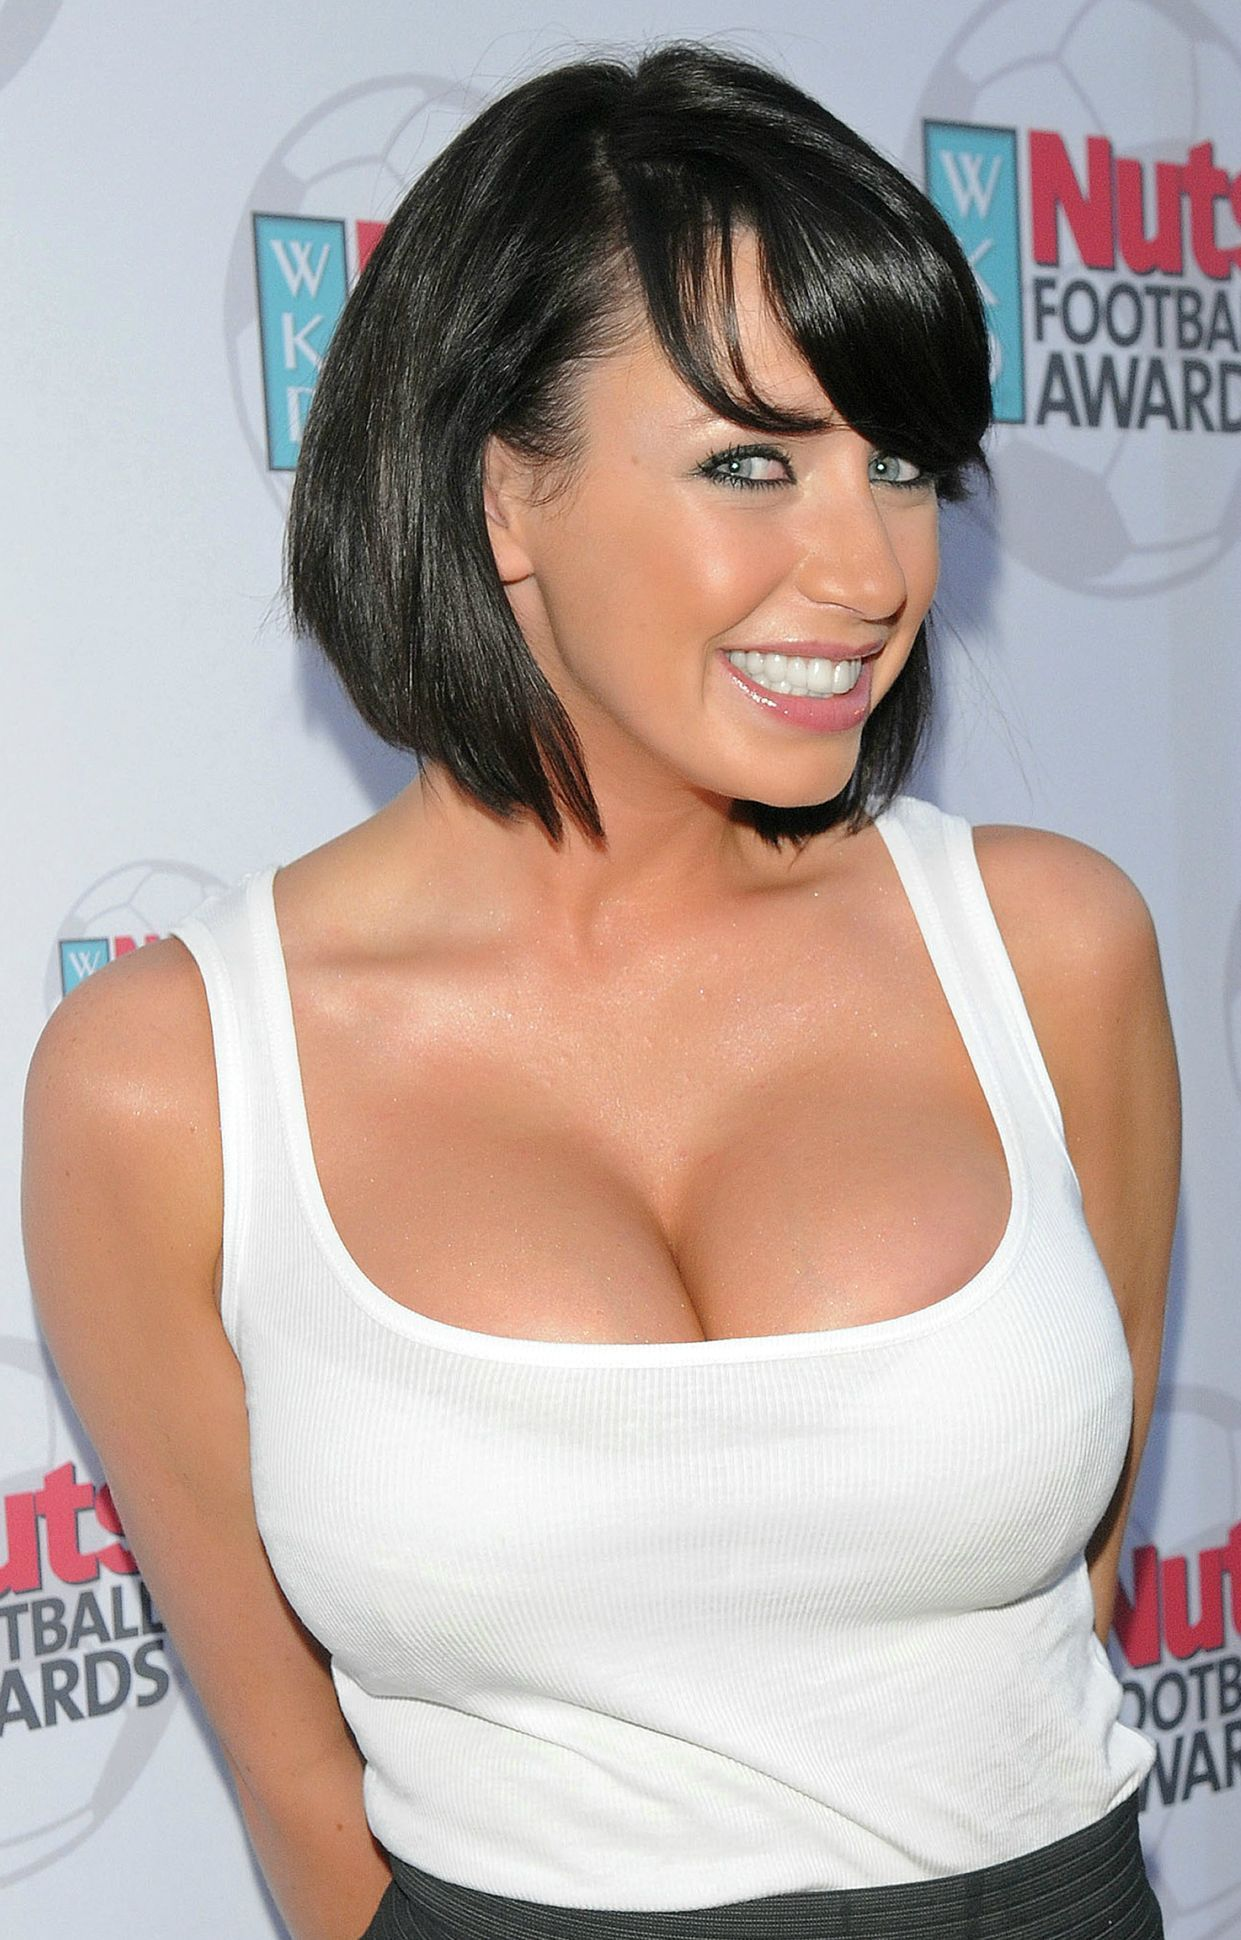 Layla Kayleigh Nude Ideal sophie howard, is an english glamour model from southport, england